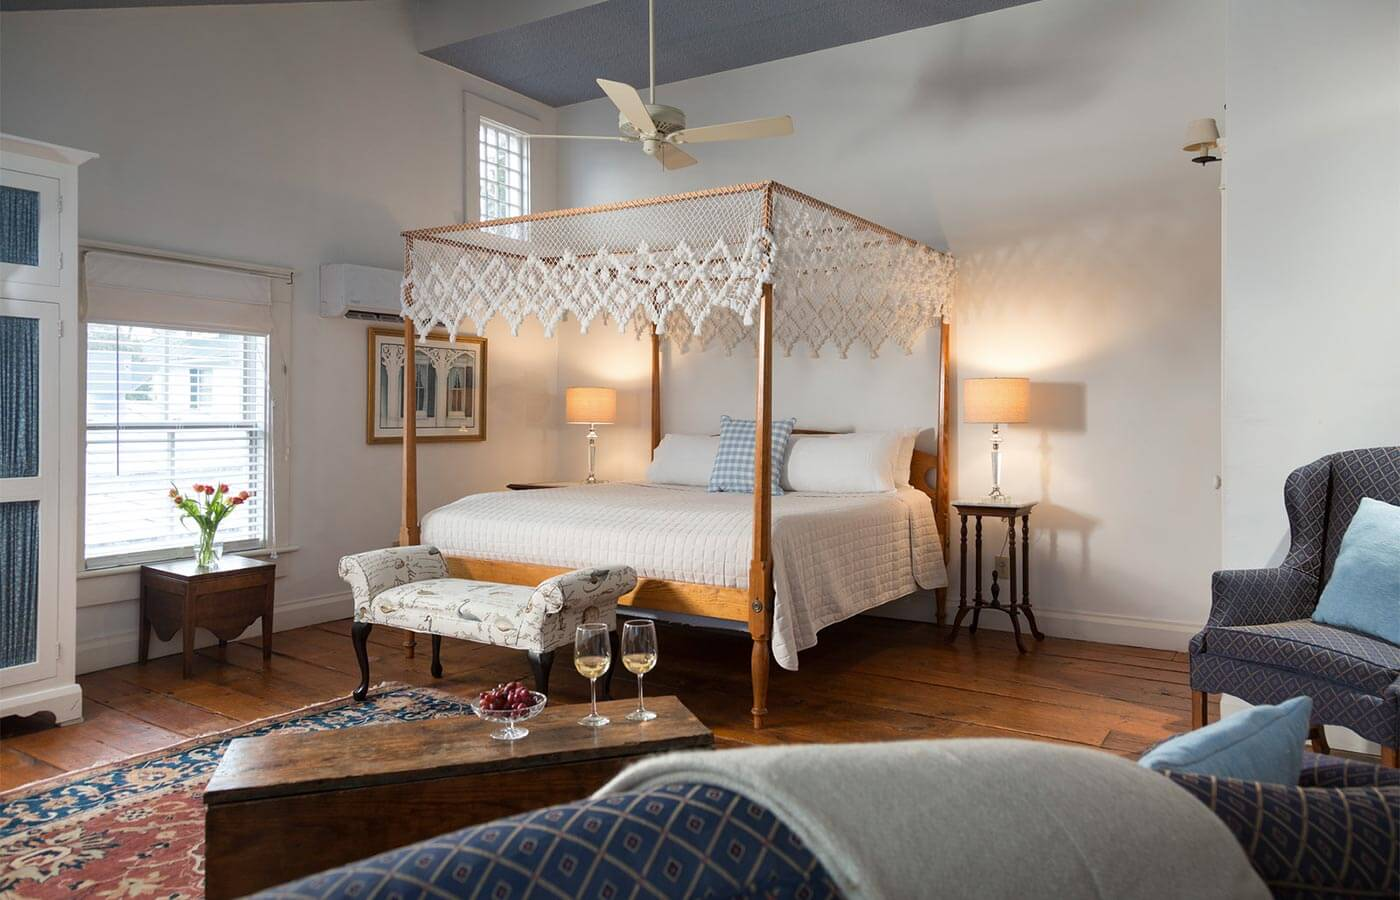 North Carolina East Coast B&B Queen Anne Suite with canopy bed, antique trunk, wine glasses